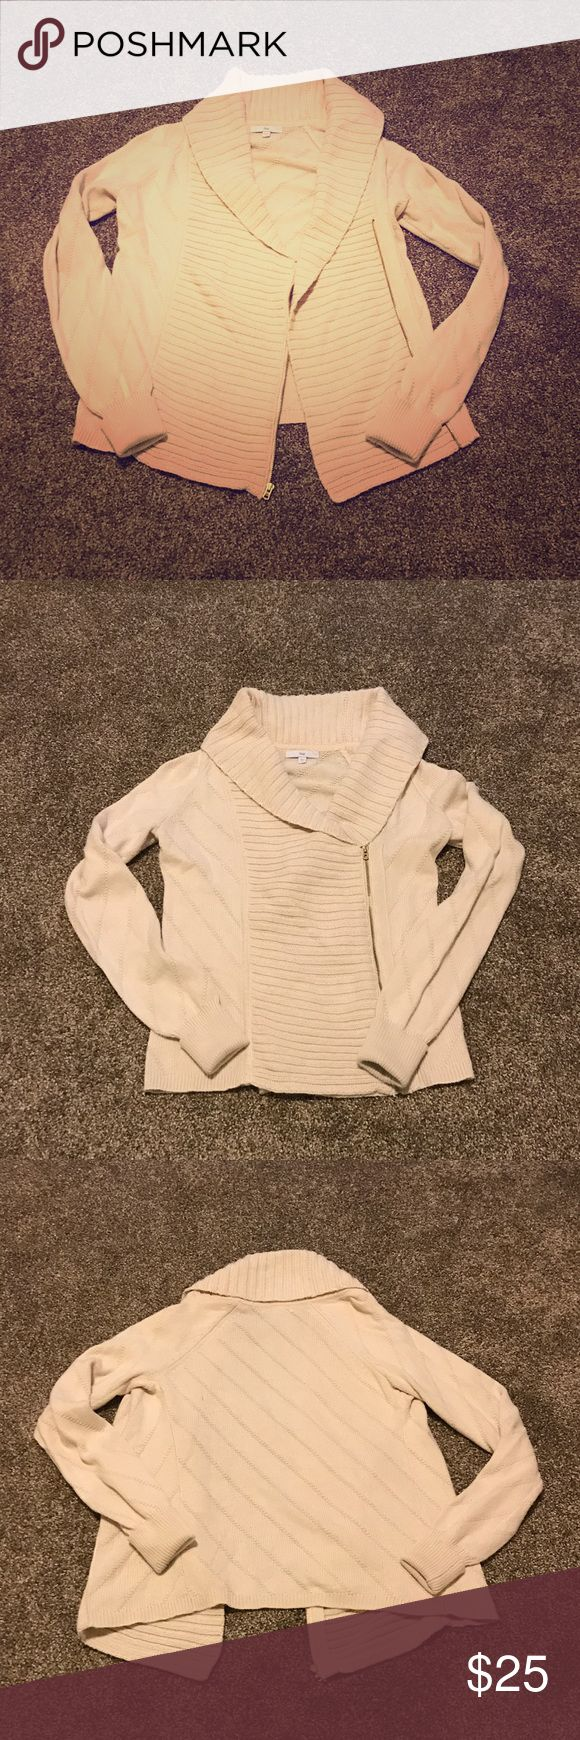 GAP Sweater Jacket Cream colored sweater jacket from The GAP retail store (not the outlet). Size small. Can be worn unzipped as a loose flowy jacket, or zipped up for more of a true sweater feel. 80% cotton, 20% acrylic. GAP Sweaters